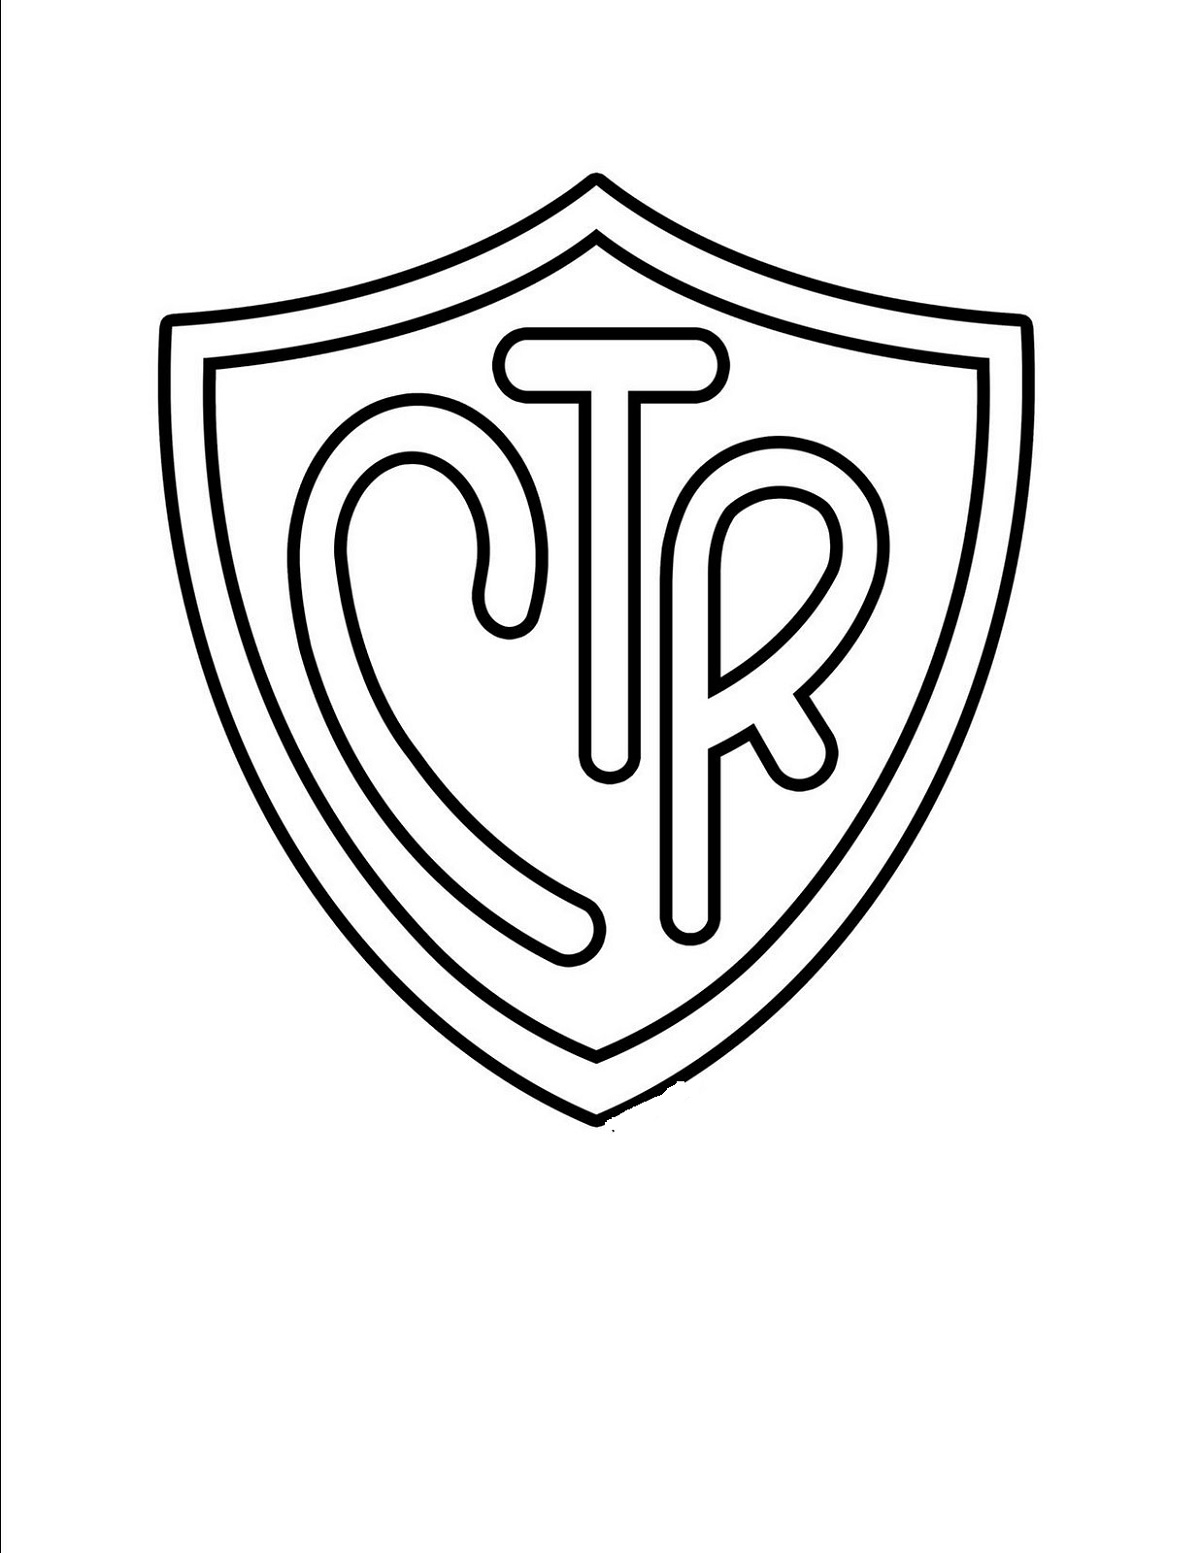 Ctr Shield Coloring Page Pictures